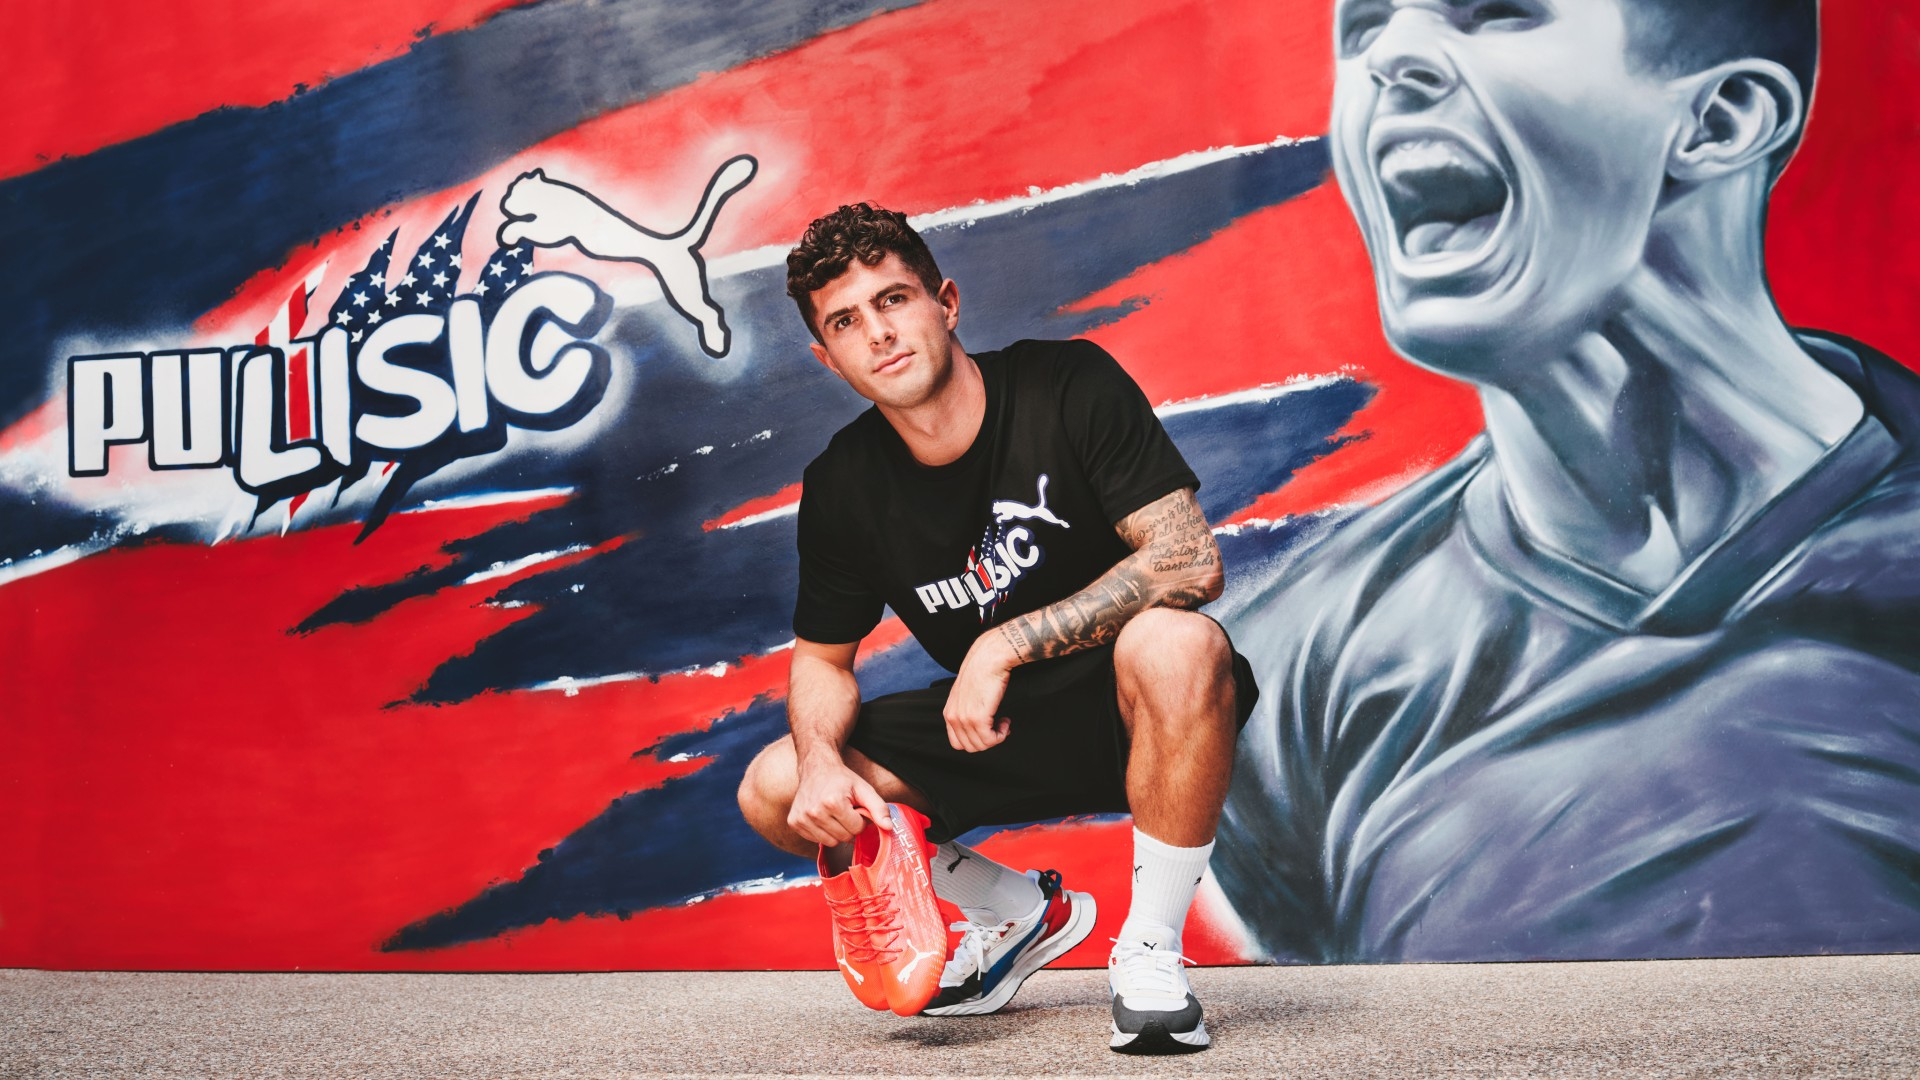 USMNT and Chelsea star Pulisic signs with Puma